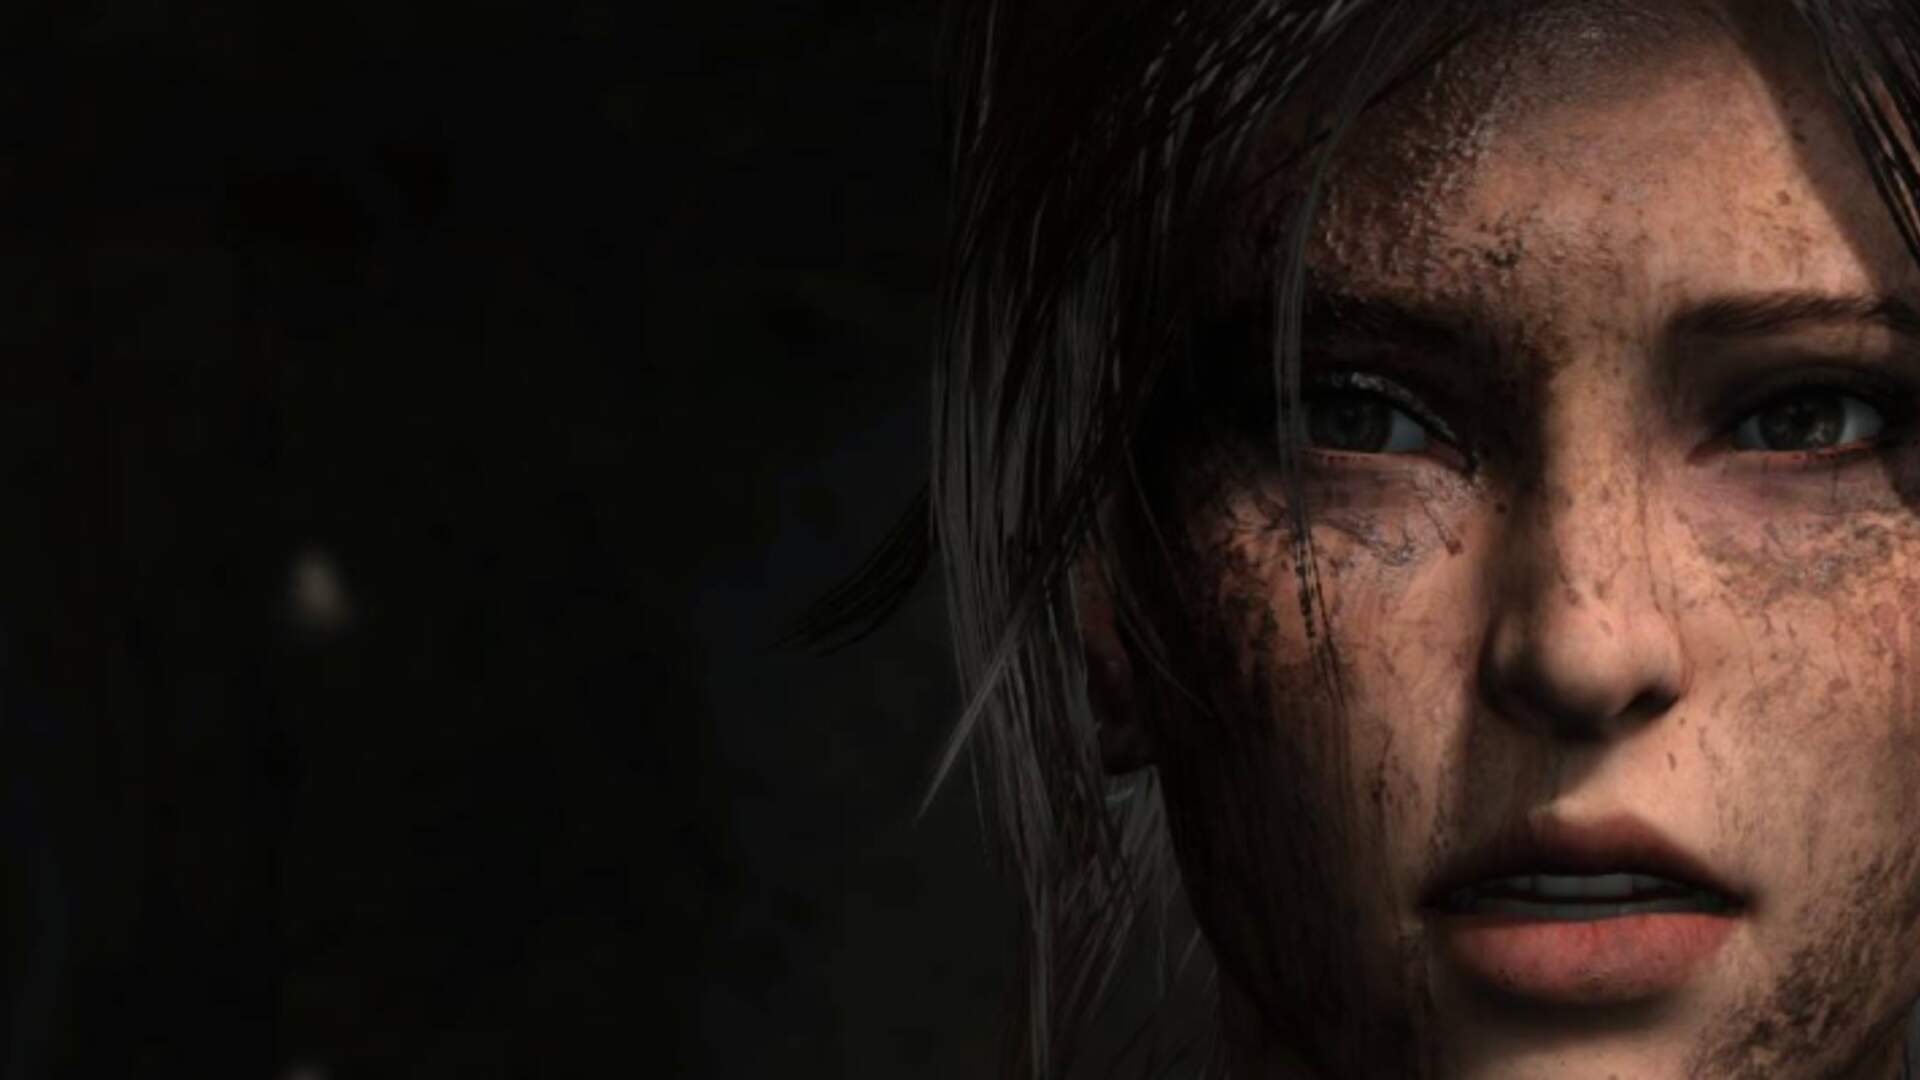 Rise of the Tomb Raider - The Rescue, Save Jonah, Path of the Deathless, The Divine Source